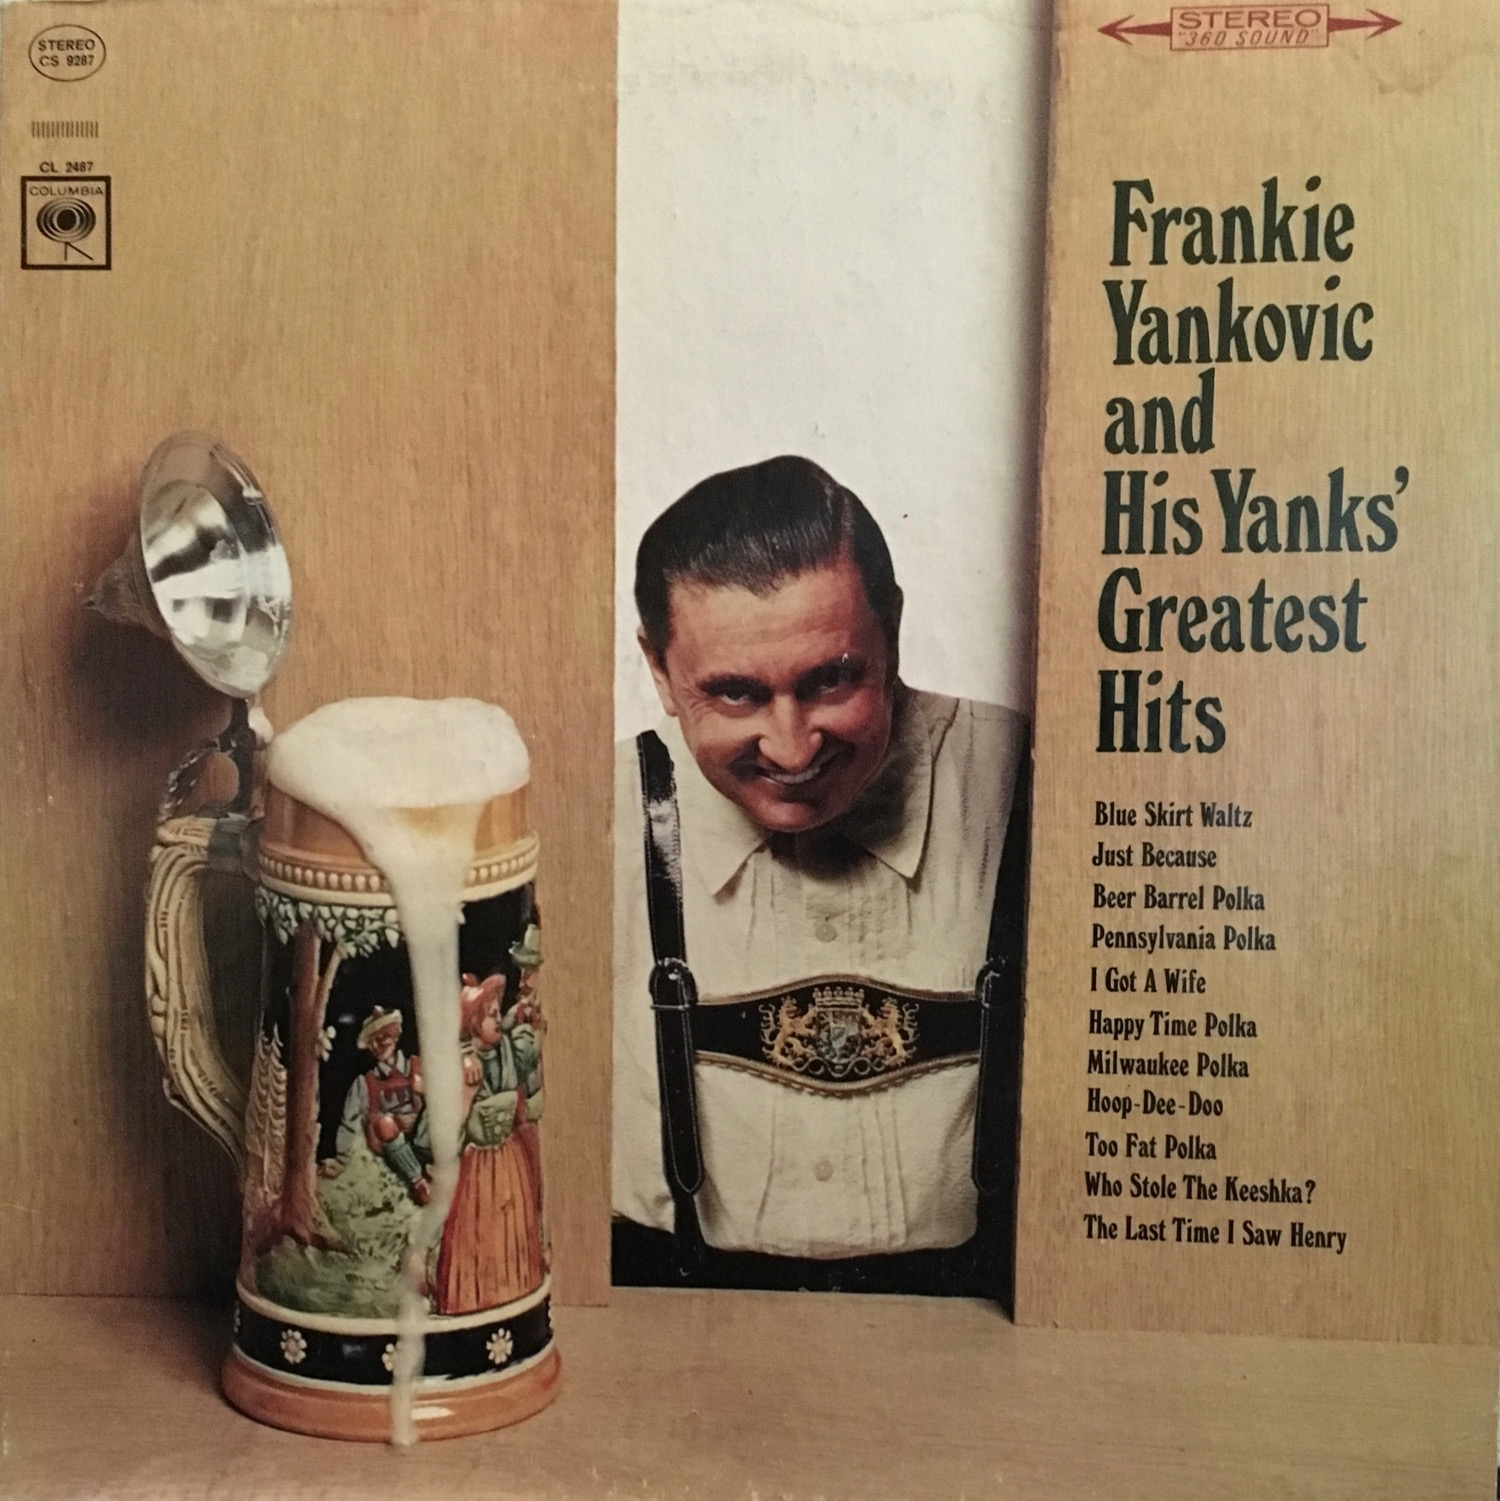 Frankie Yankovic being a creeper